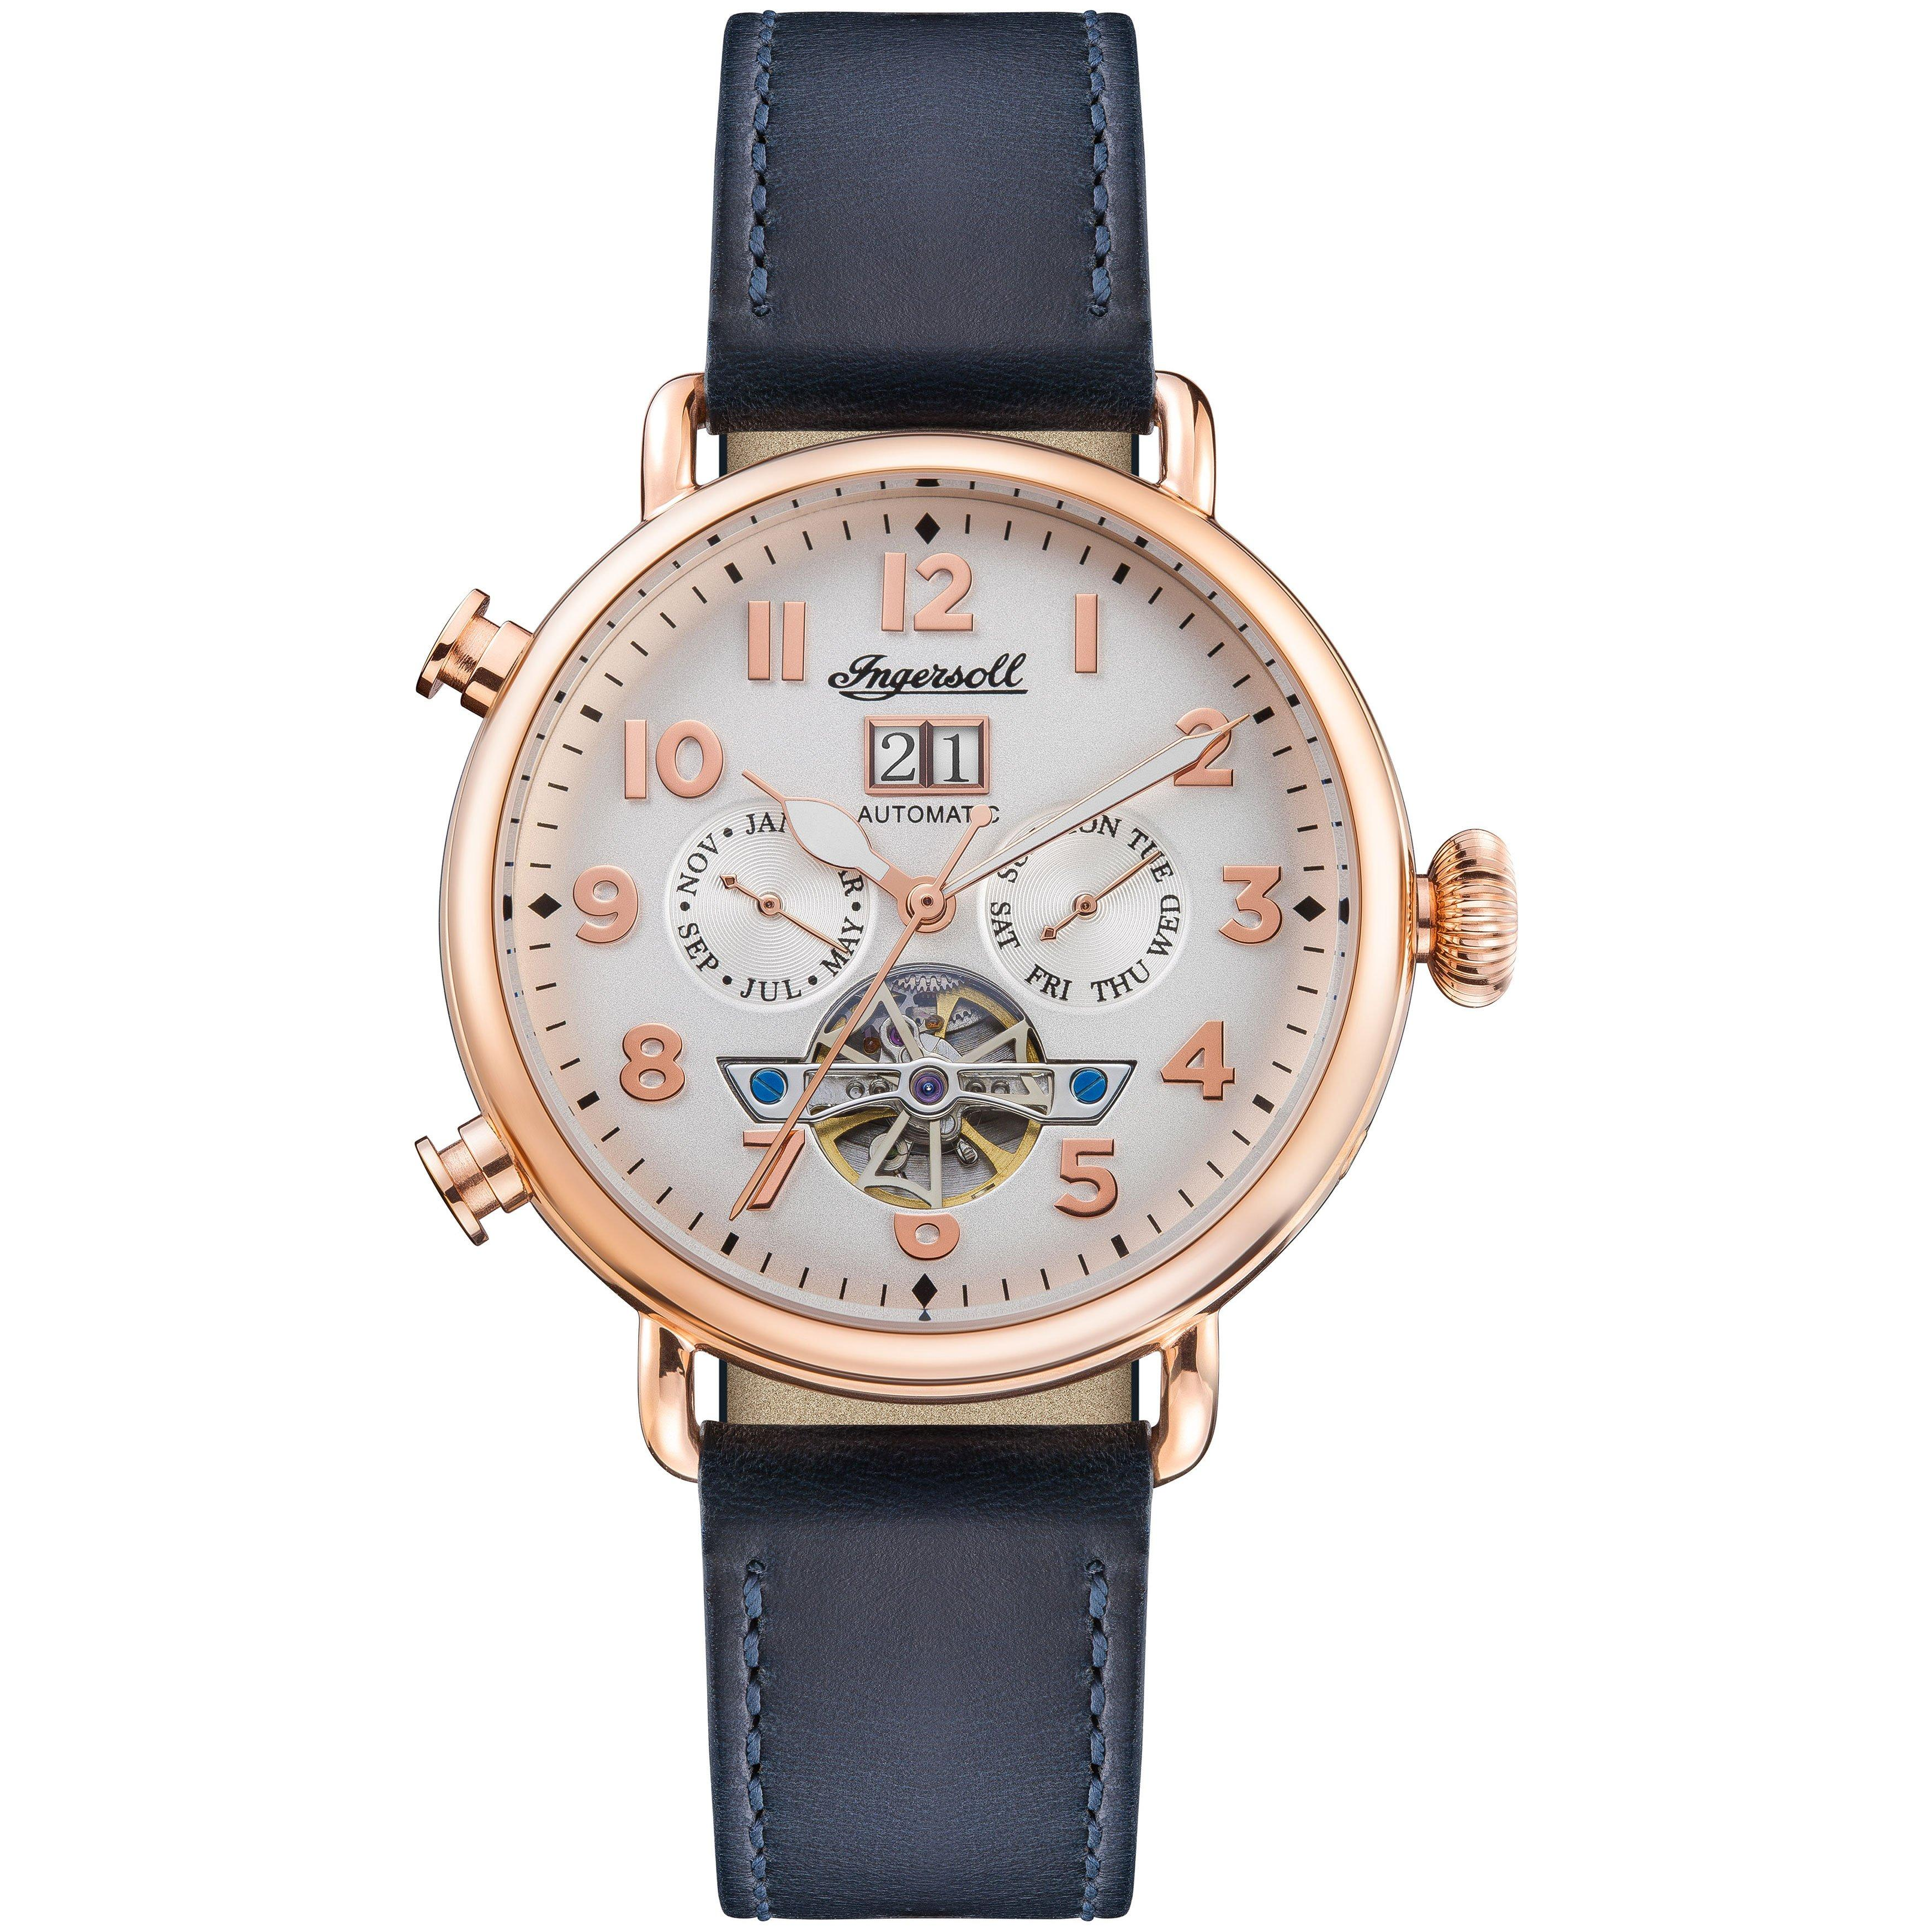 Ingersoll Muse Automatic Men's Watch